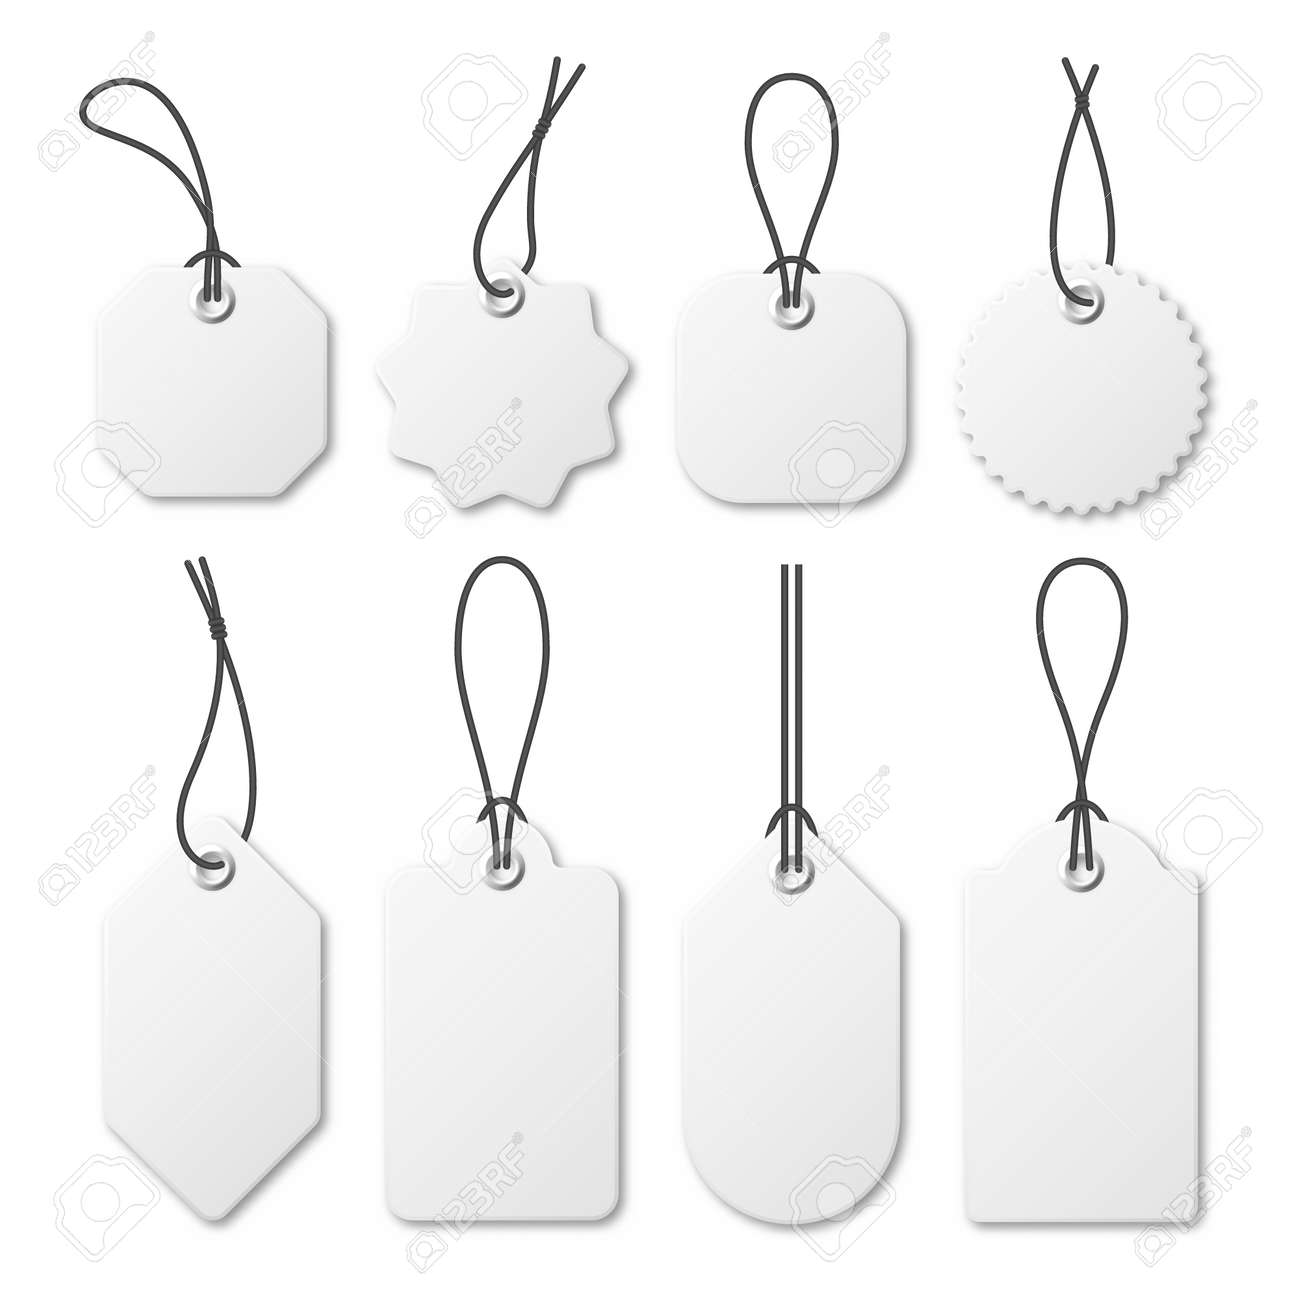 Realistic white price tags collection. Special offer or shopping discount label. Retail paper sticker. Promotional sale badge. Vector illustration. - 159746593